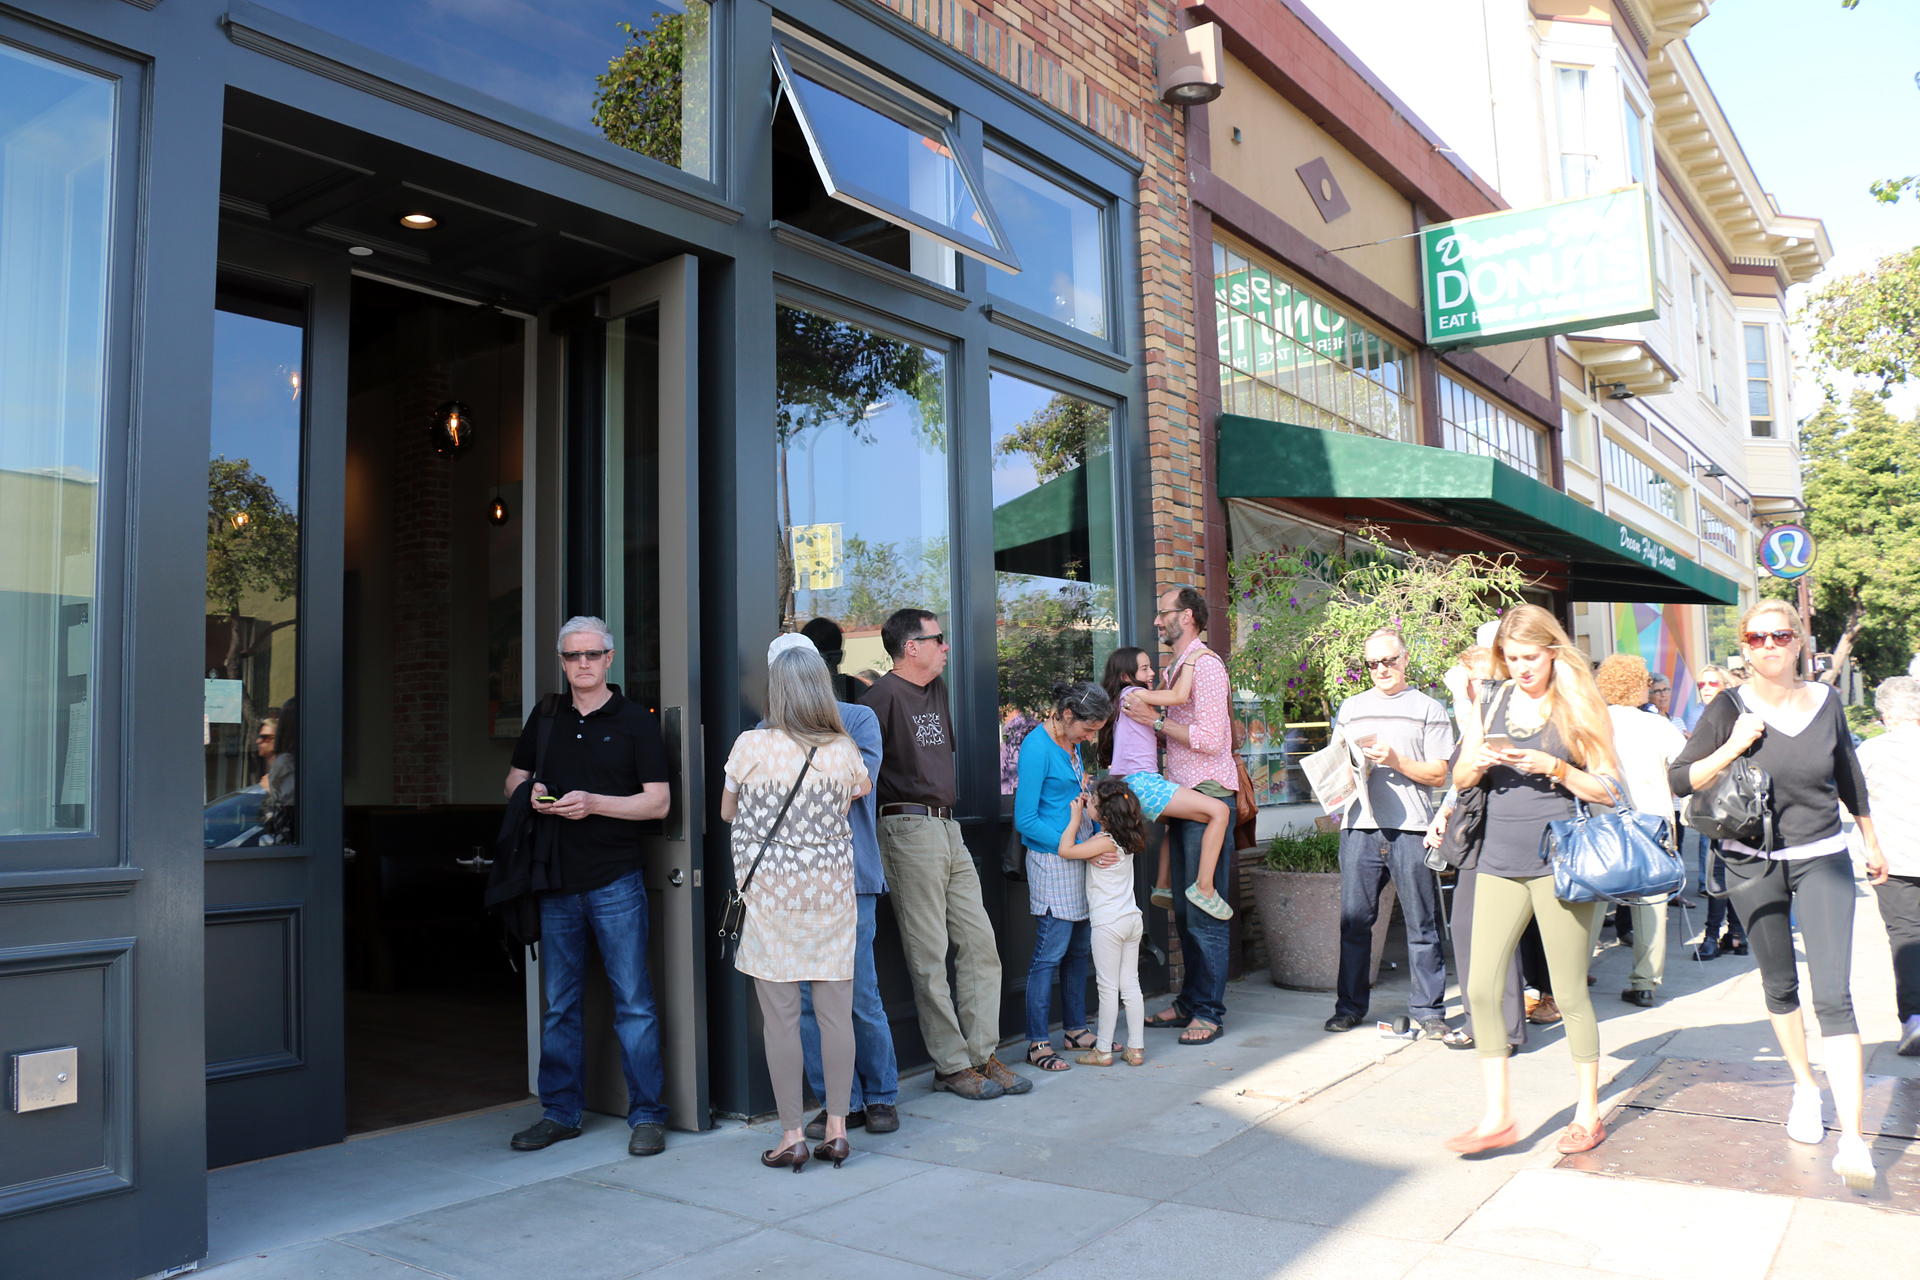 Lining up for the opening of The Advocate in Berkeley's Elmwood neighborhood.